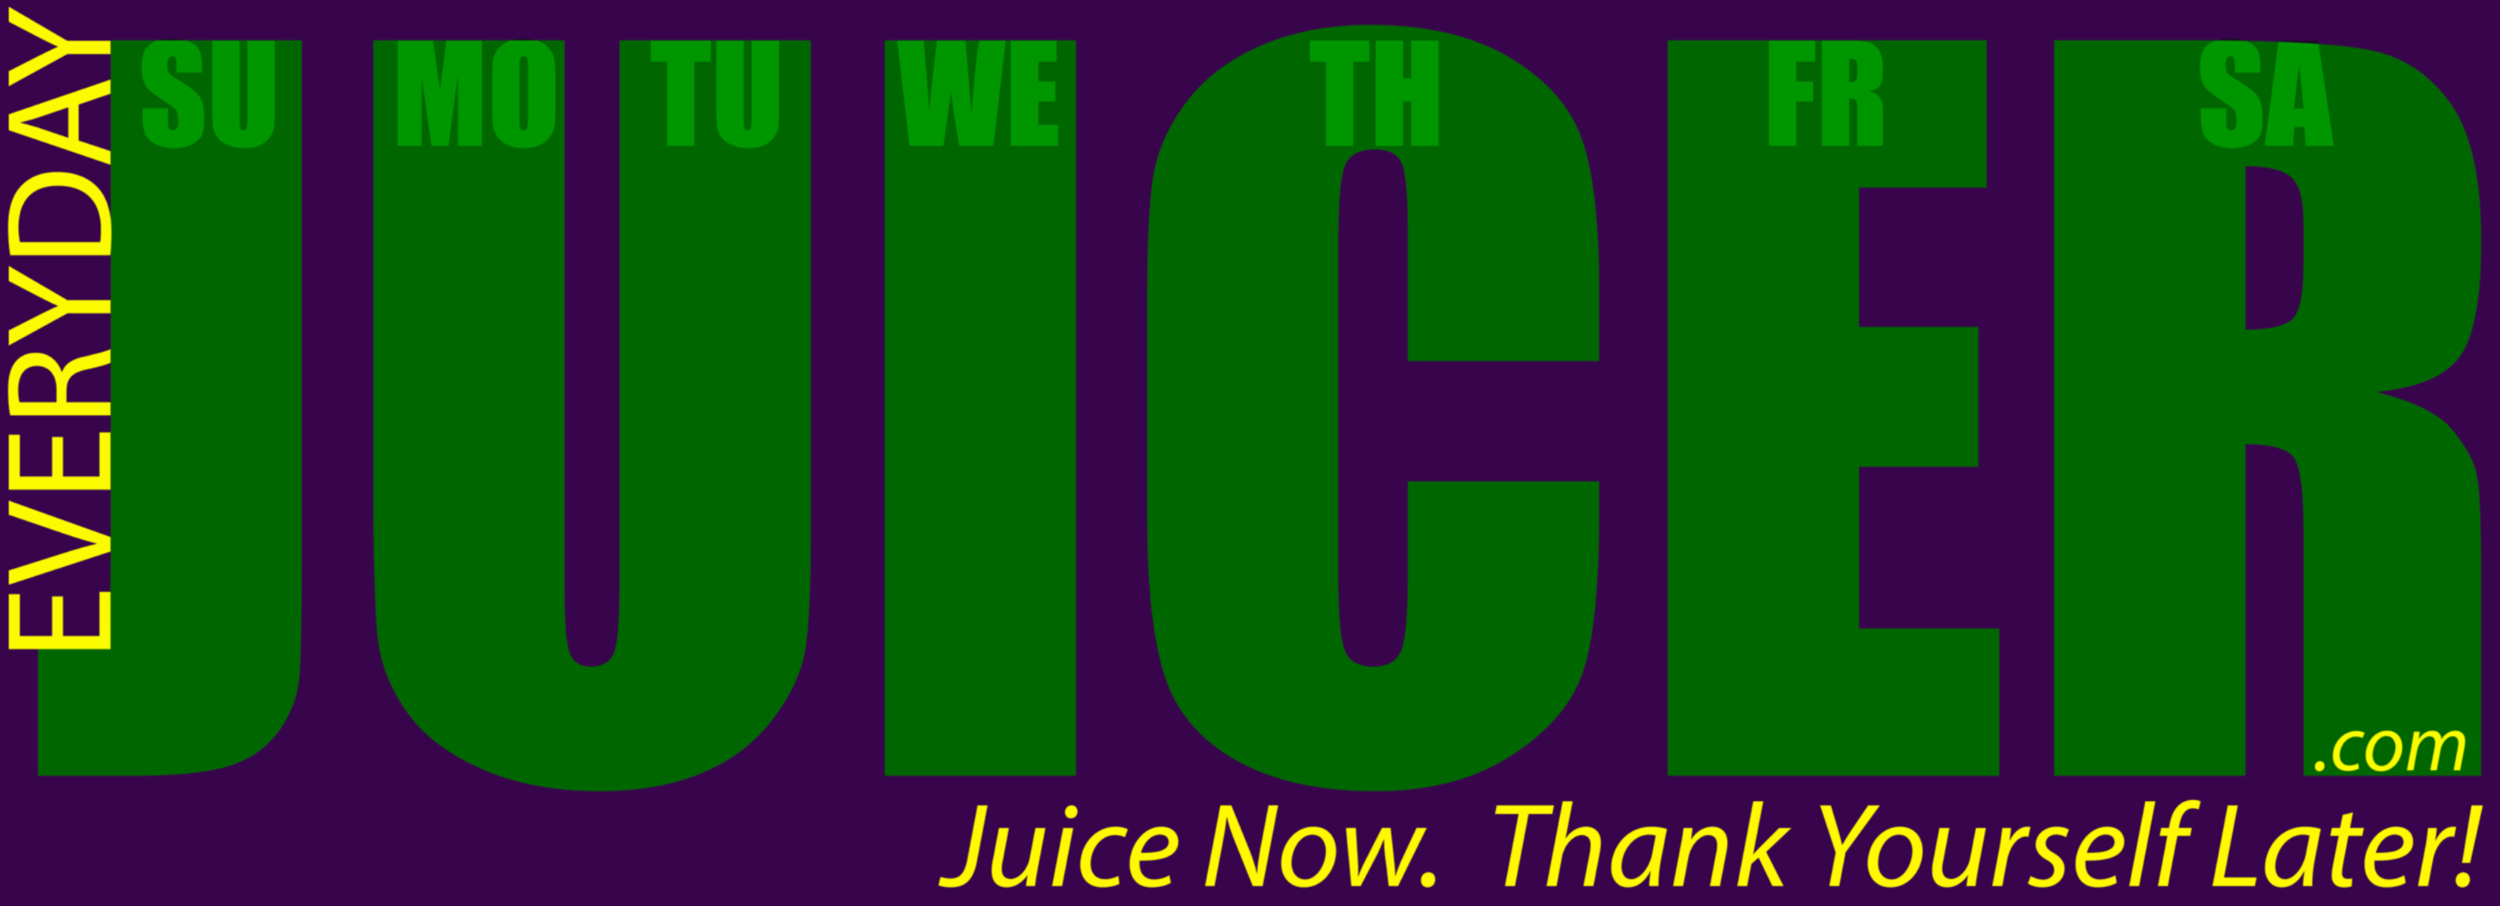 Google+ - Everyday Juicer - 3311x1200.png